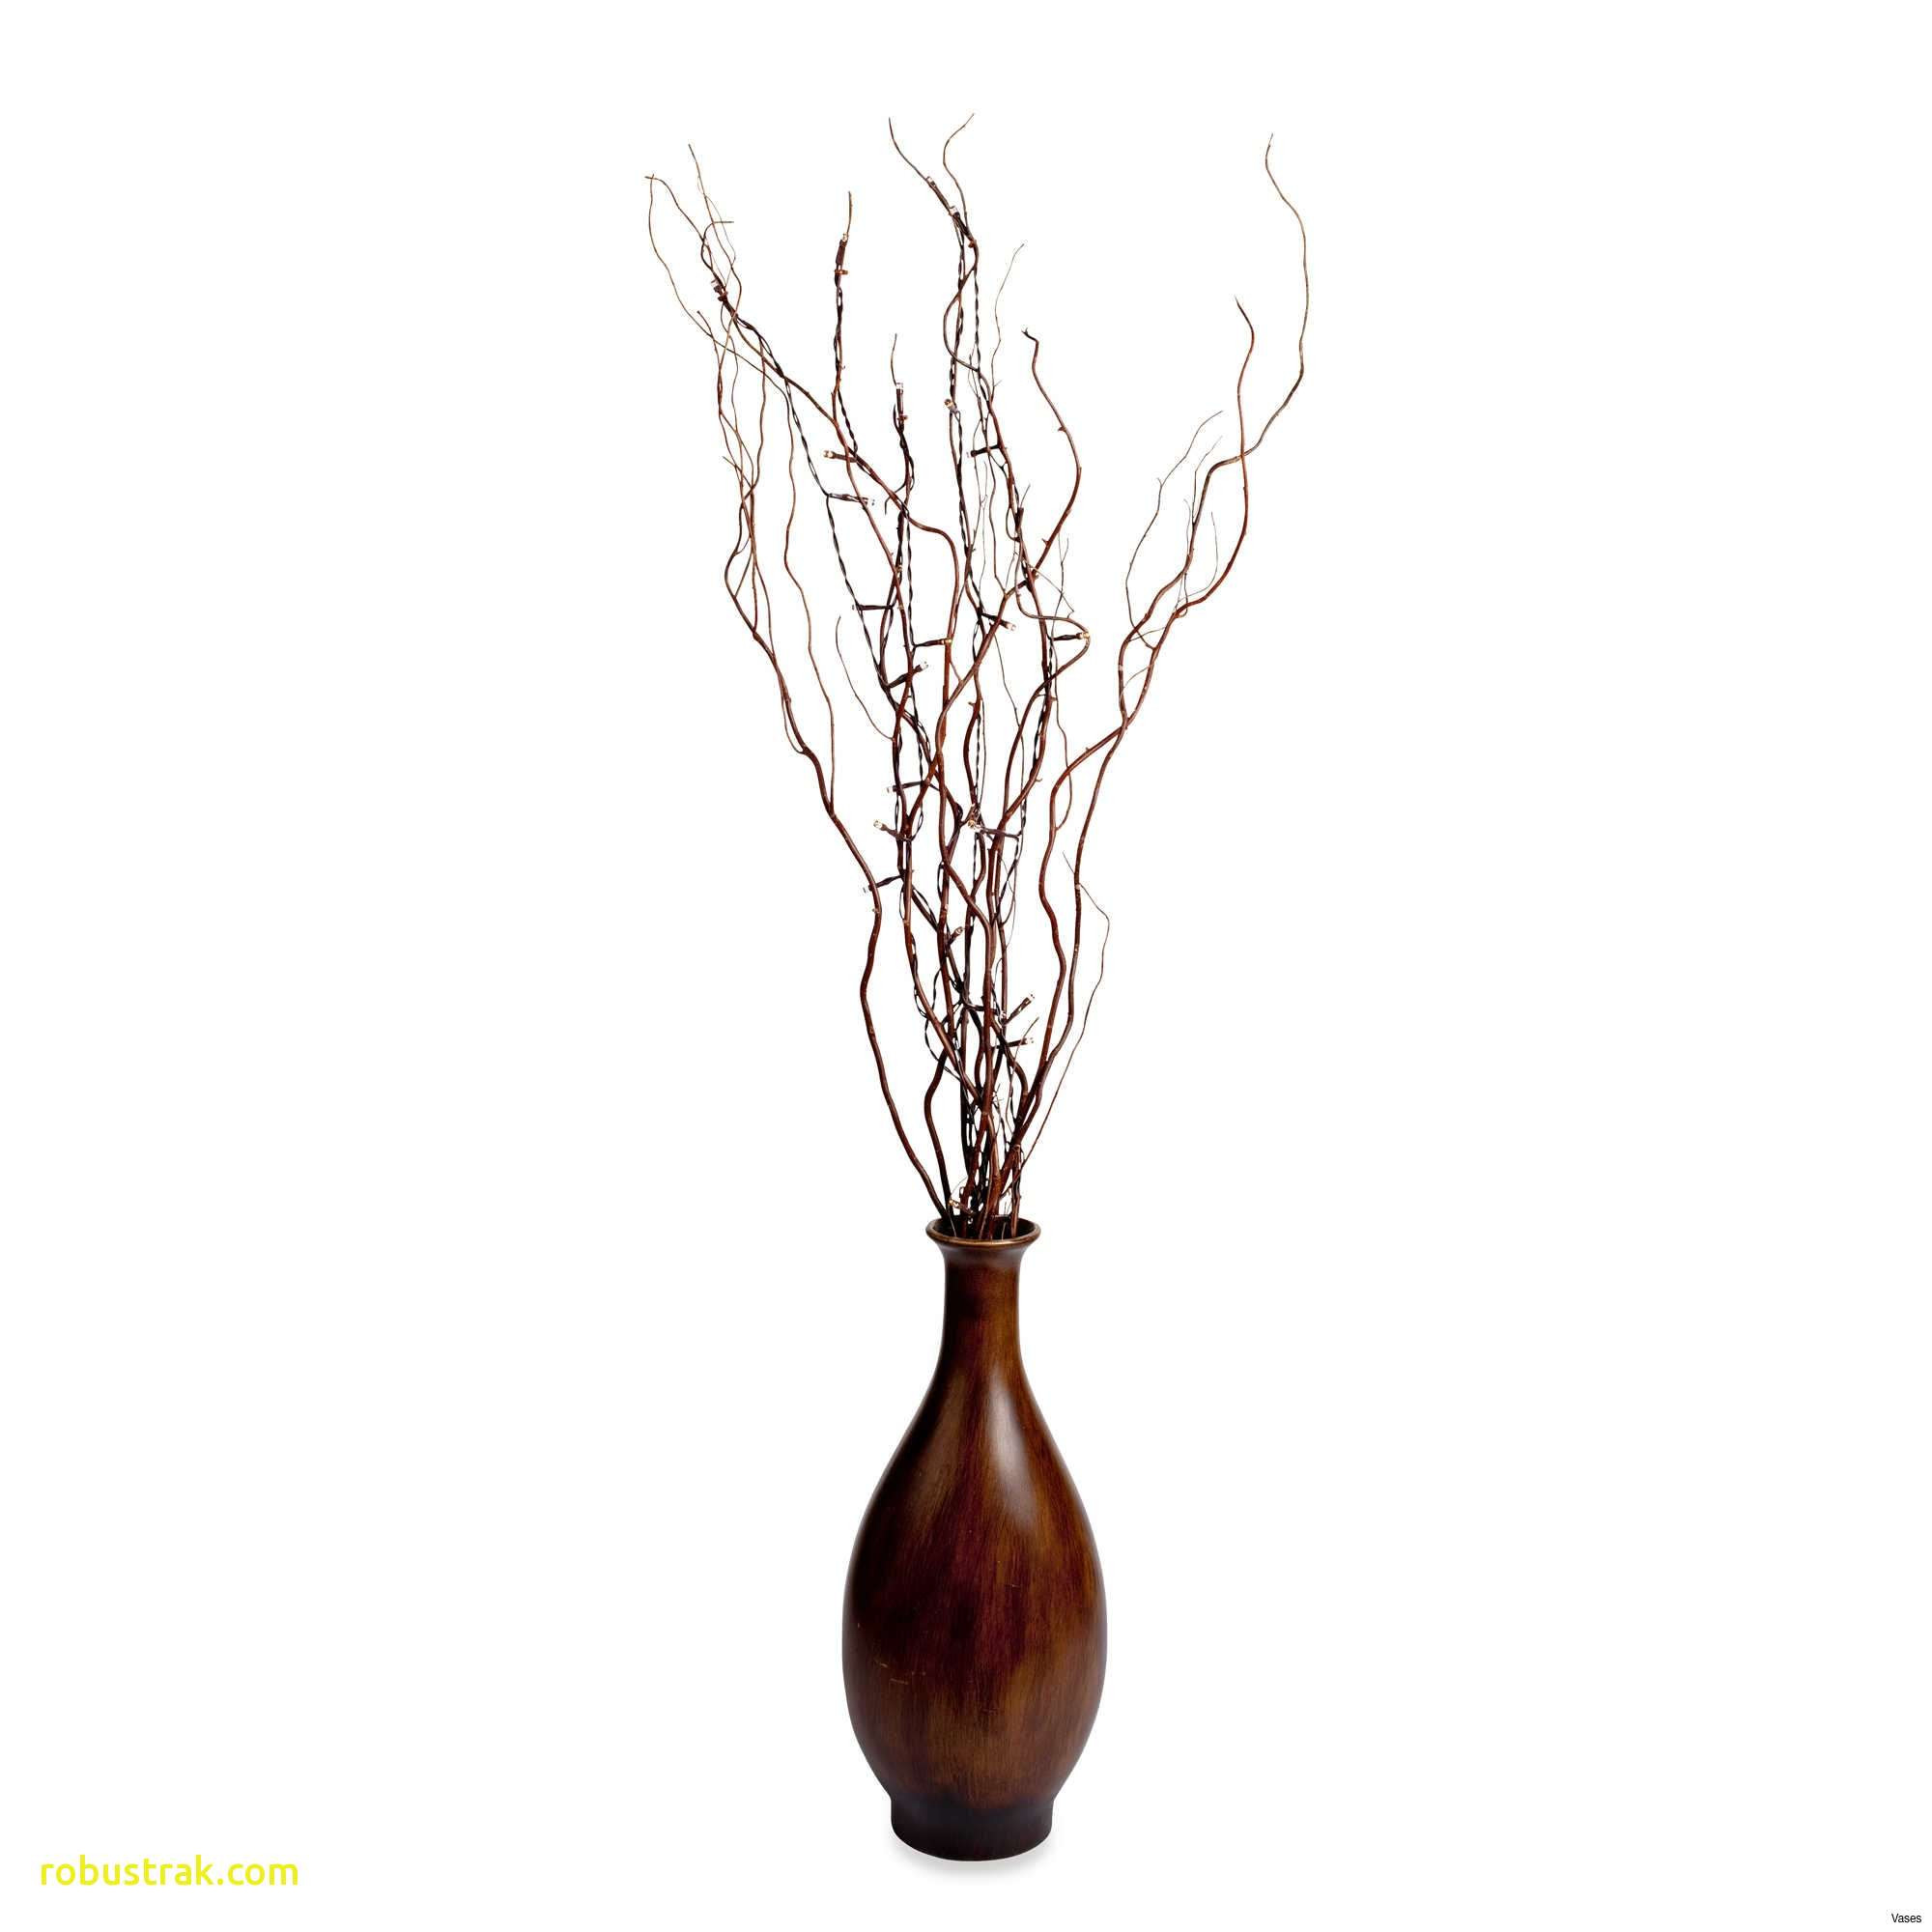 turquoise floor vase of inspirational decor sticks in a vase home design ideas throughout brown lighted branches matched with home accessories ideas vase sticks luxury standing tableh vases decorative in